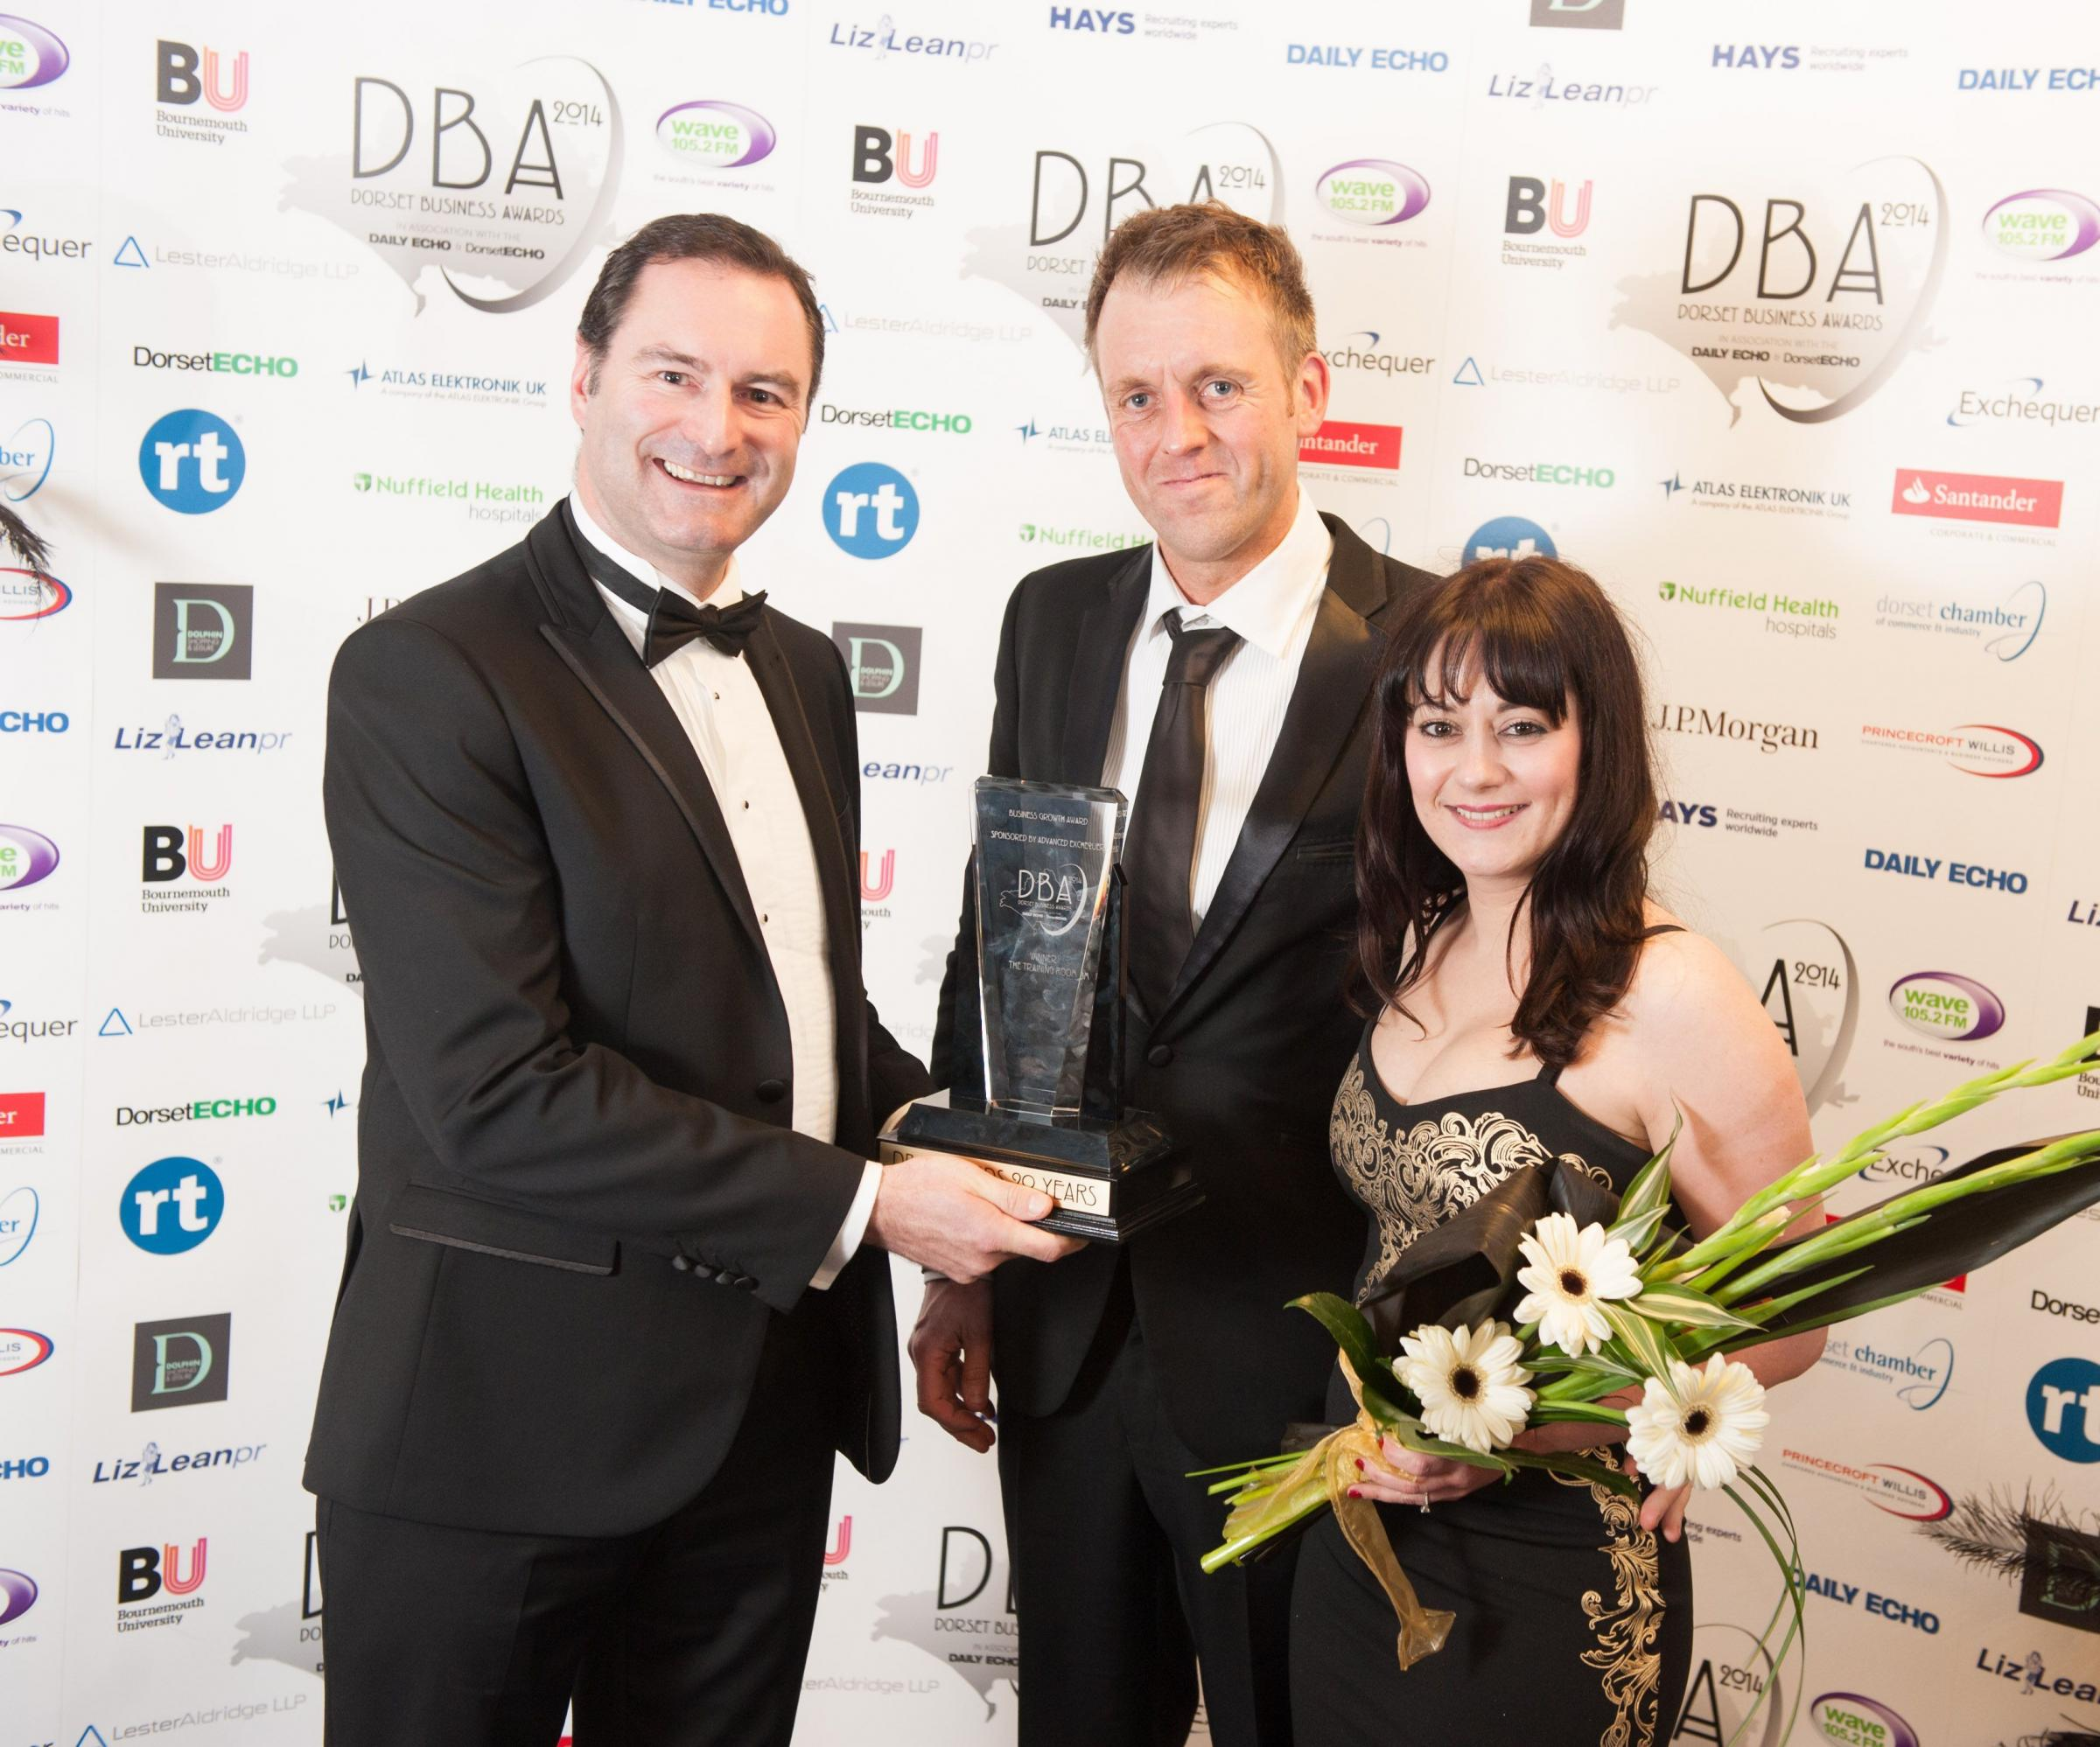 GROWING CONCERN: Greg Ford of Advanced Exchequer with Jonathan Davies and Hayley Evans of the Training Room, winner of the Business Growth Award at the 2015 Dorset Business Awards